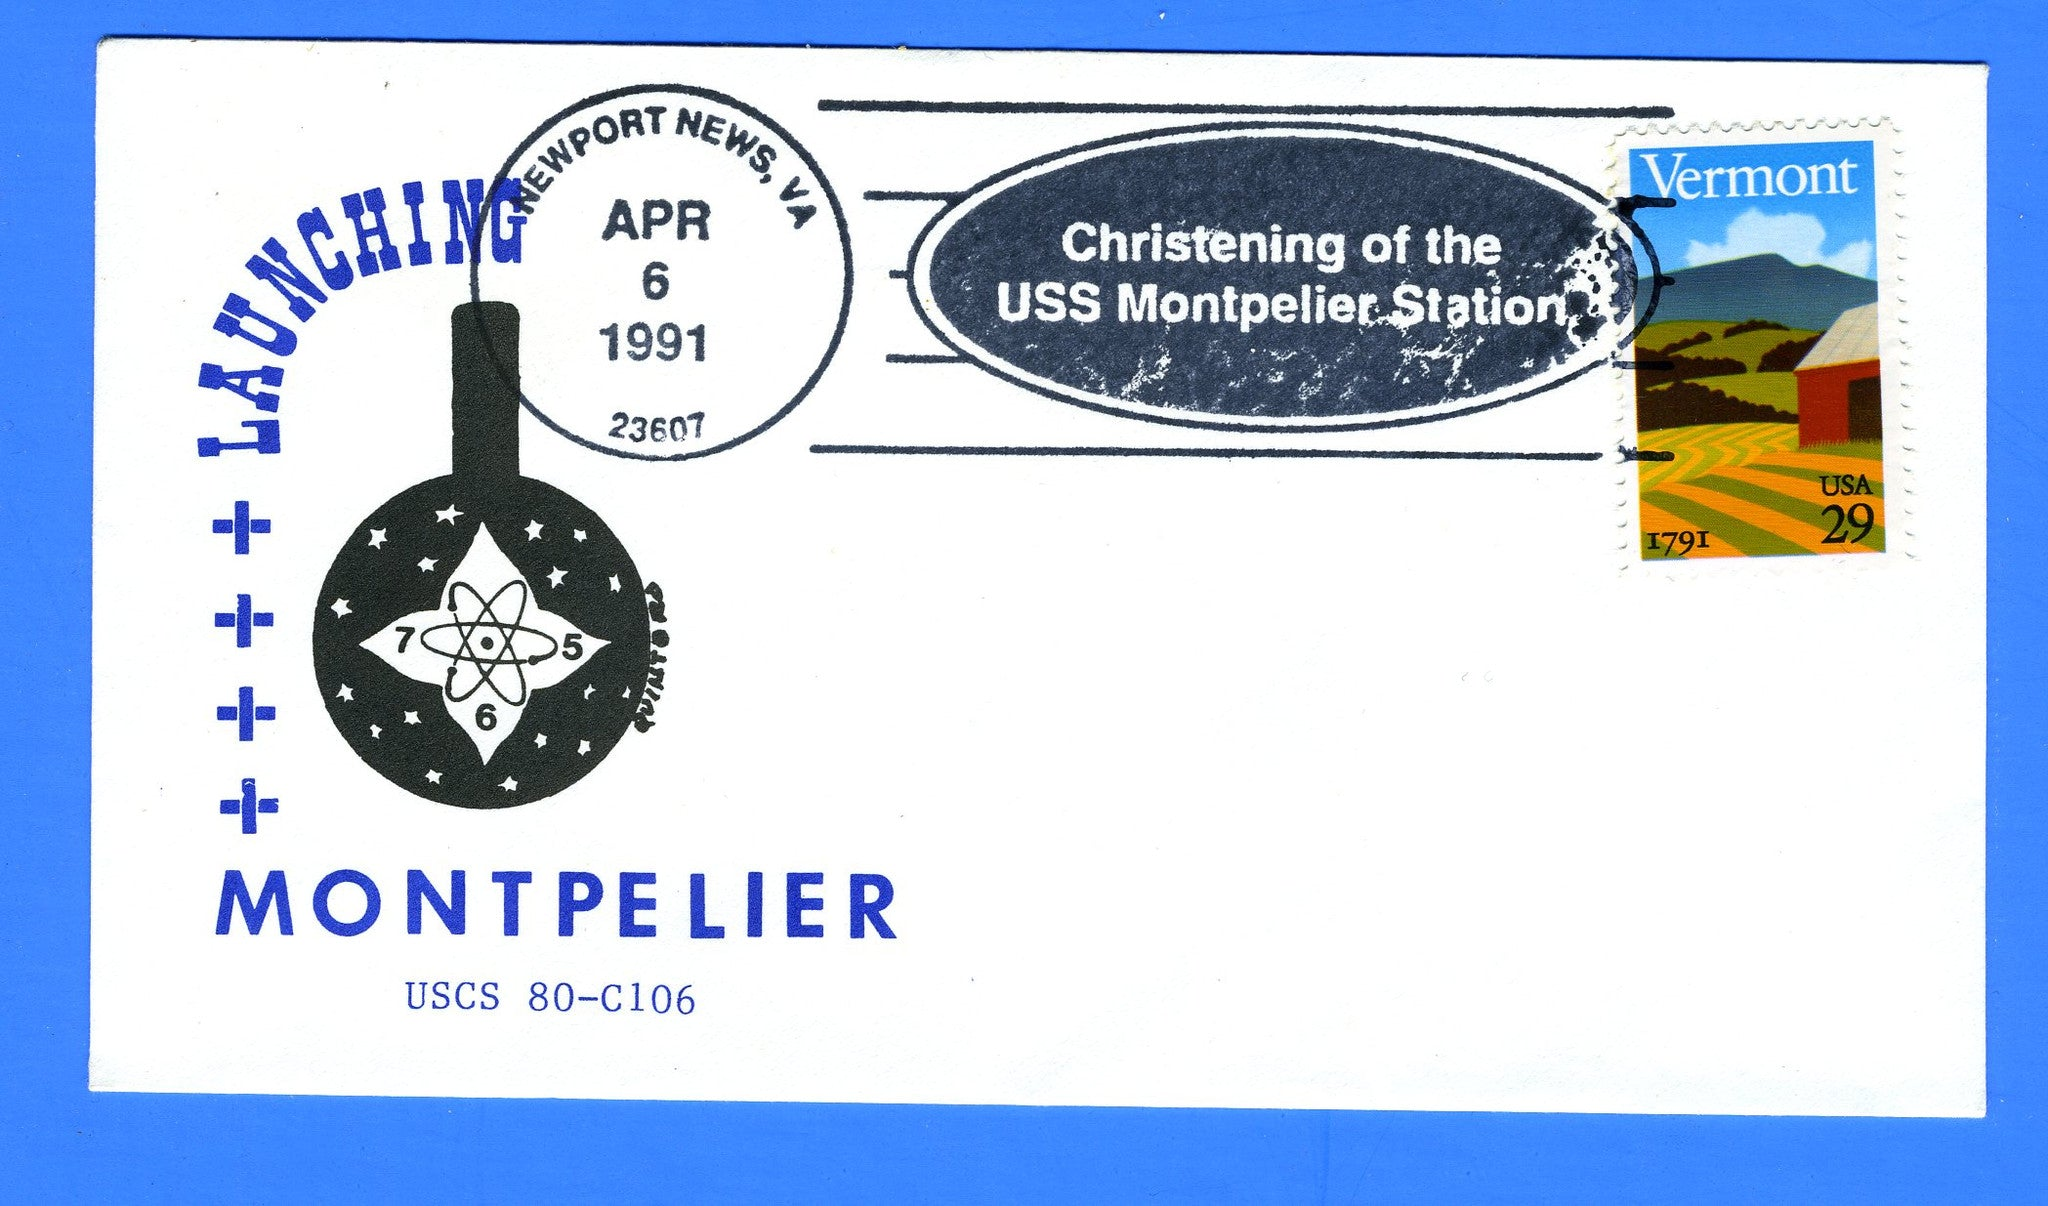 USS Montpelier SSN-765 Launched & Christened April 6, 1991